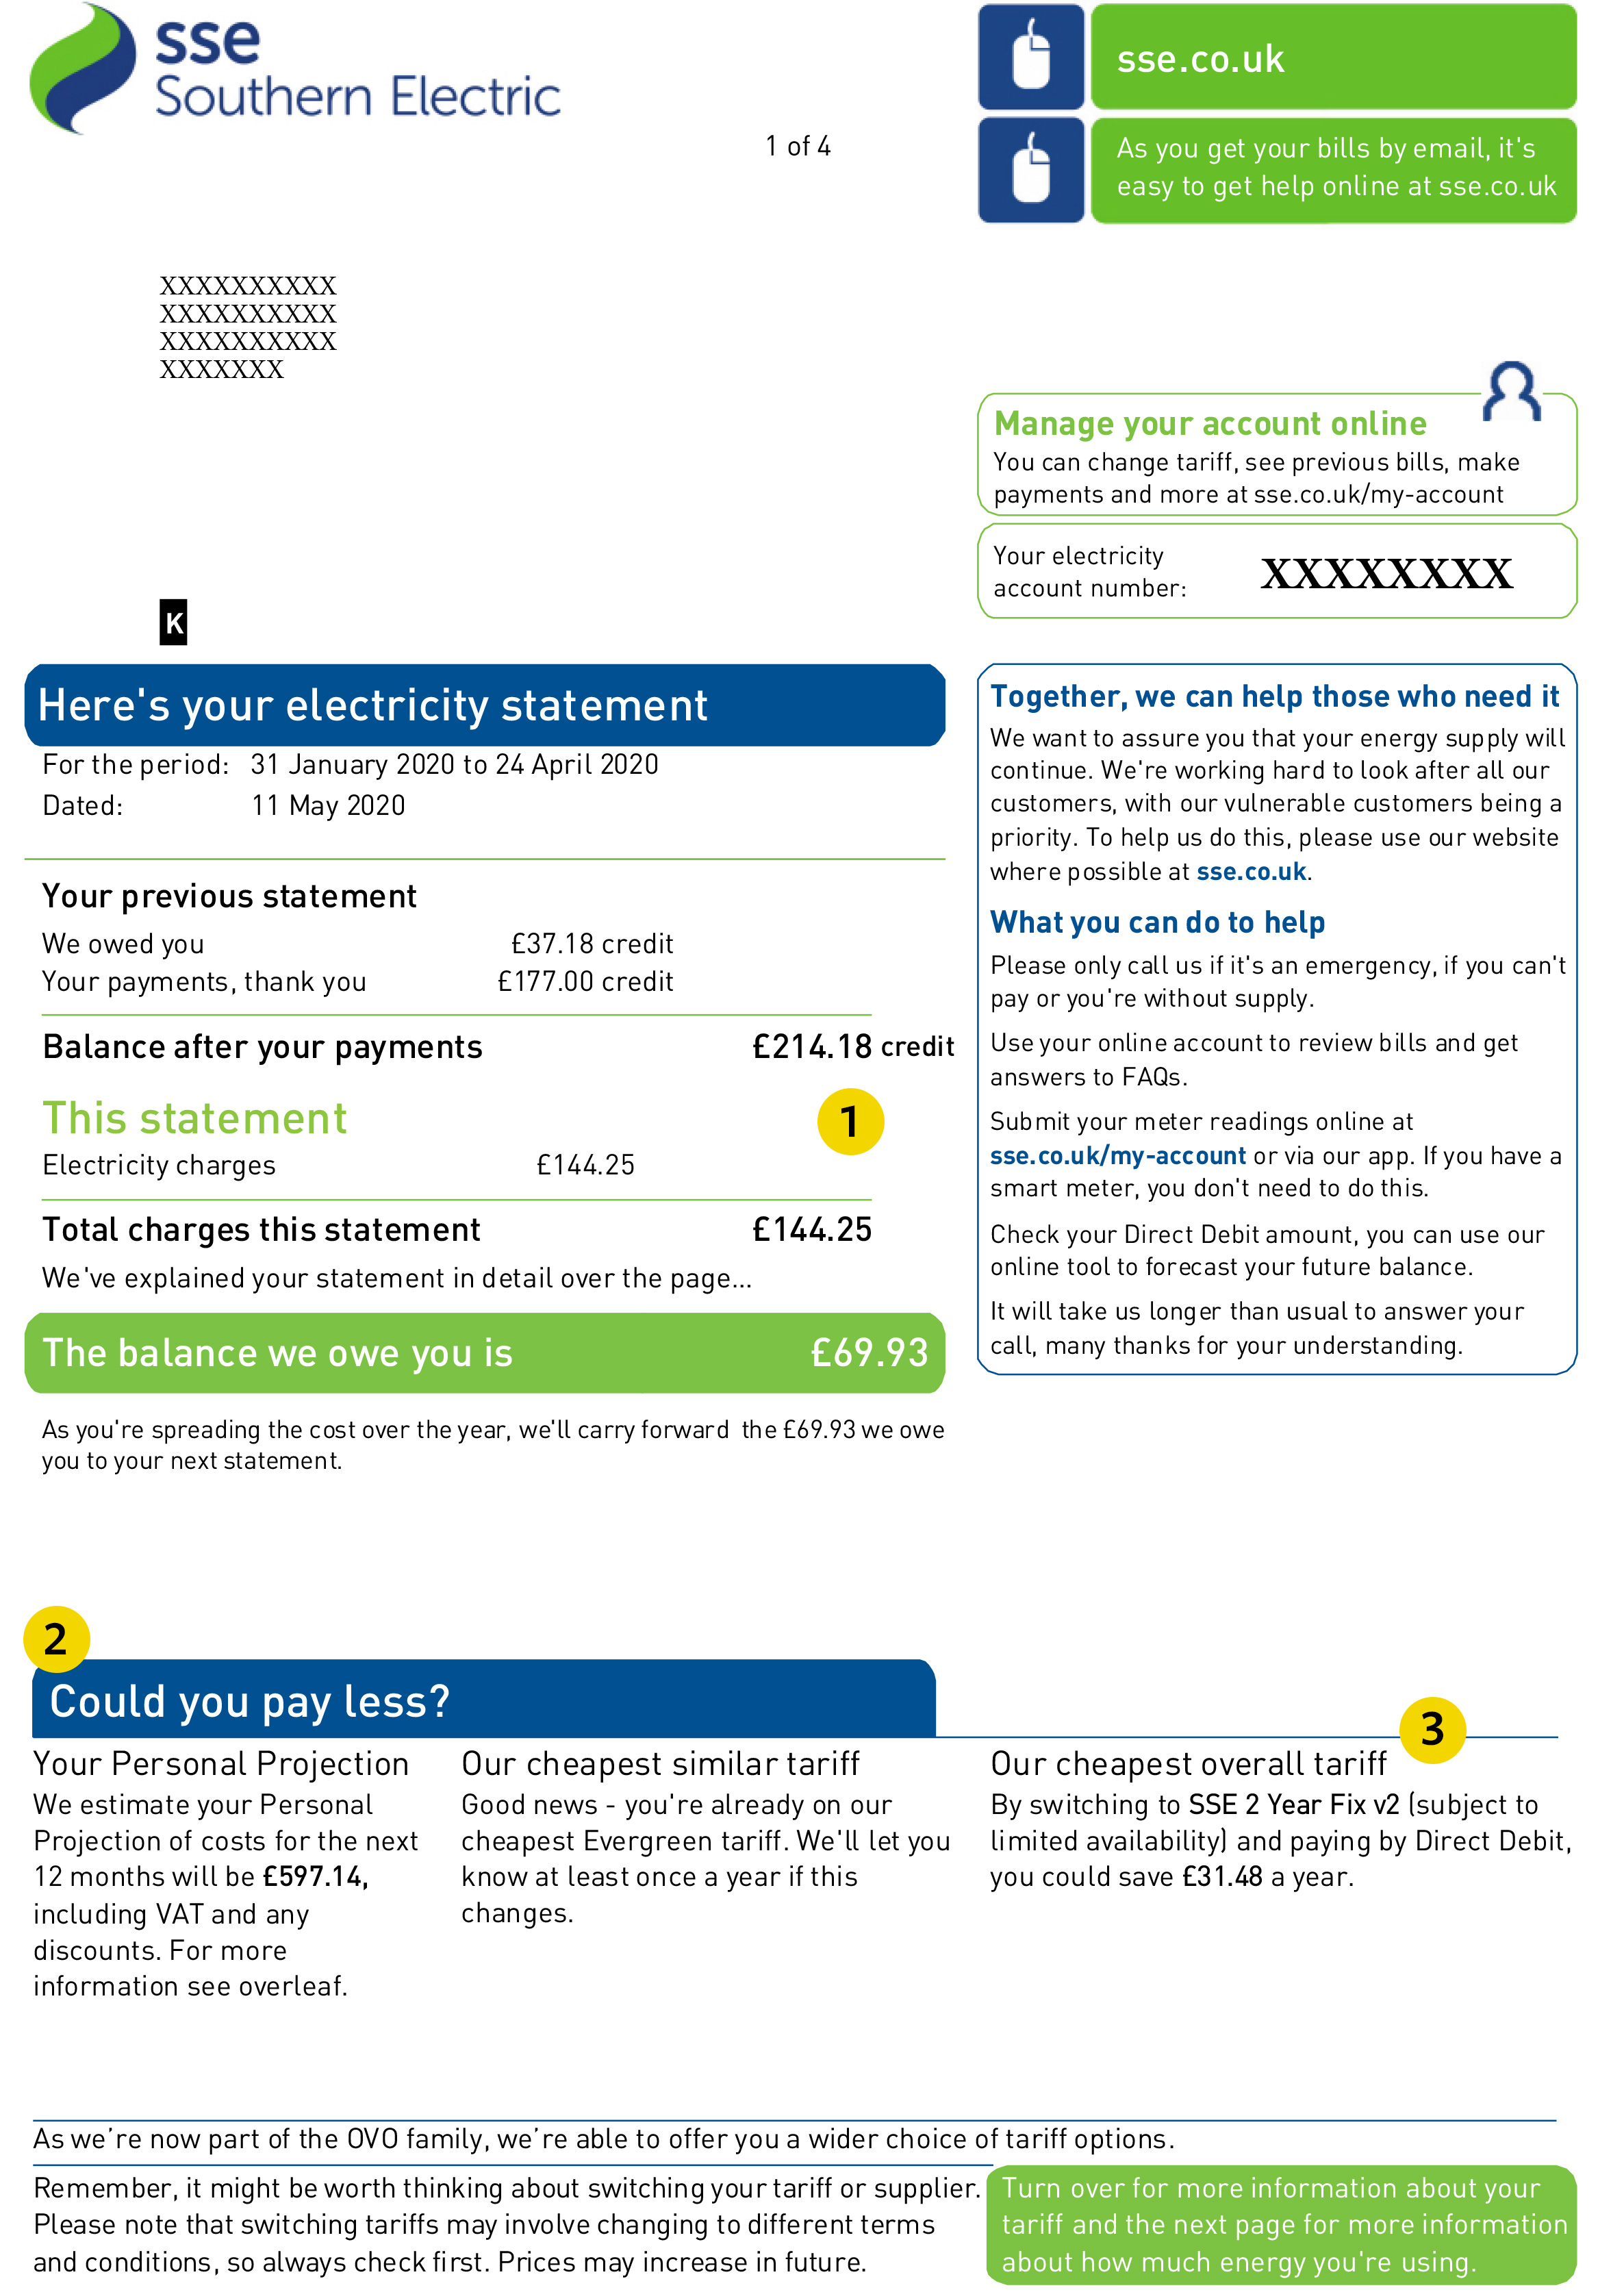 SSE energy bill page 1